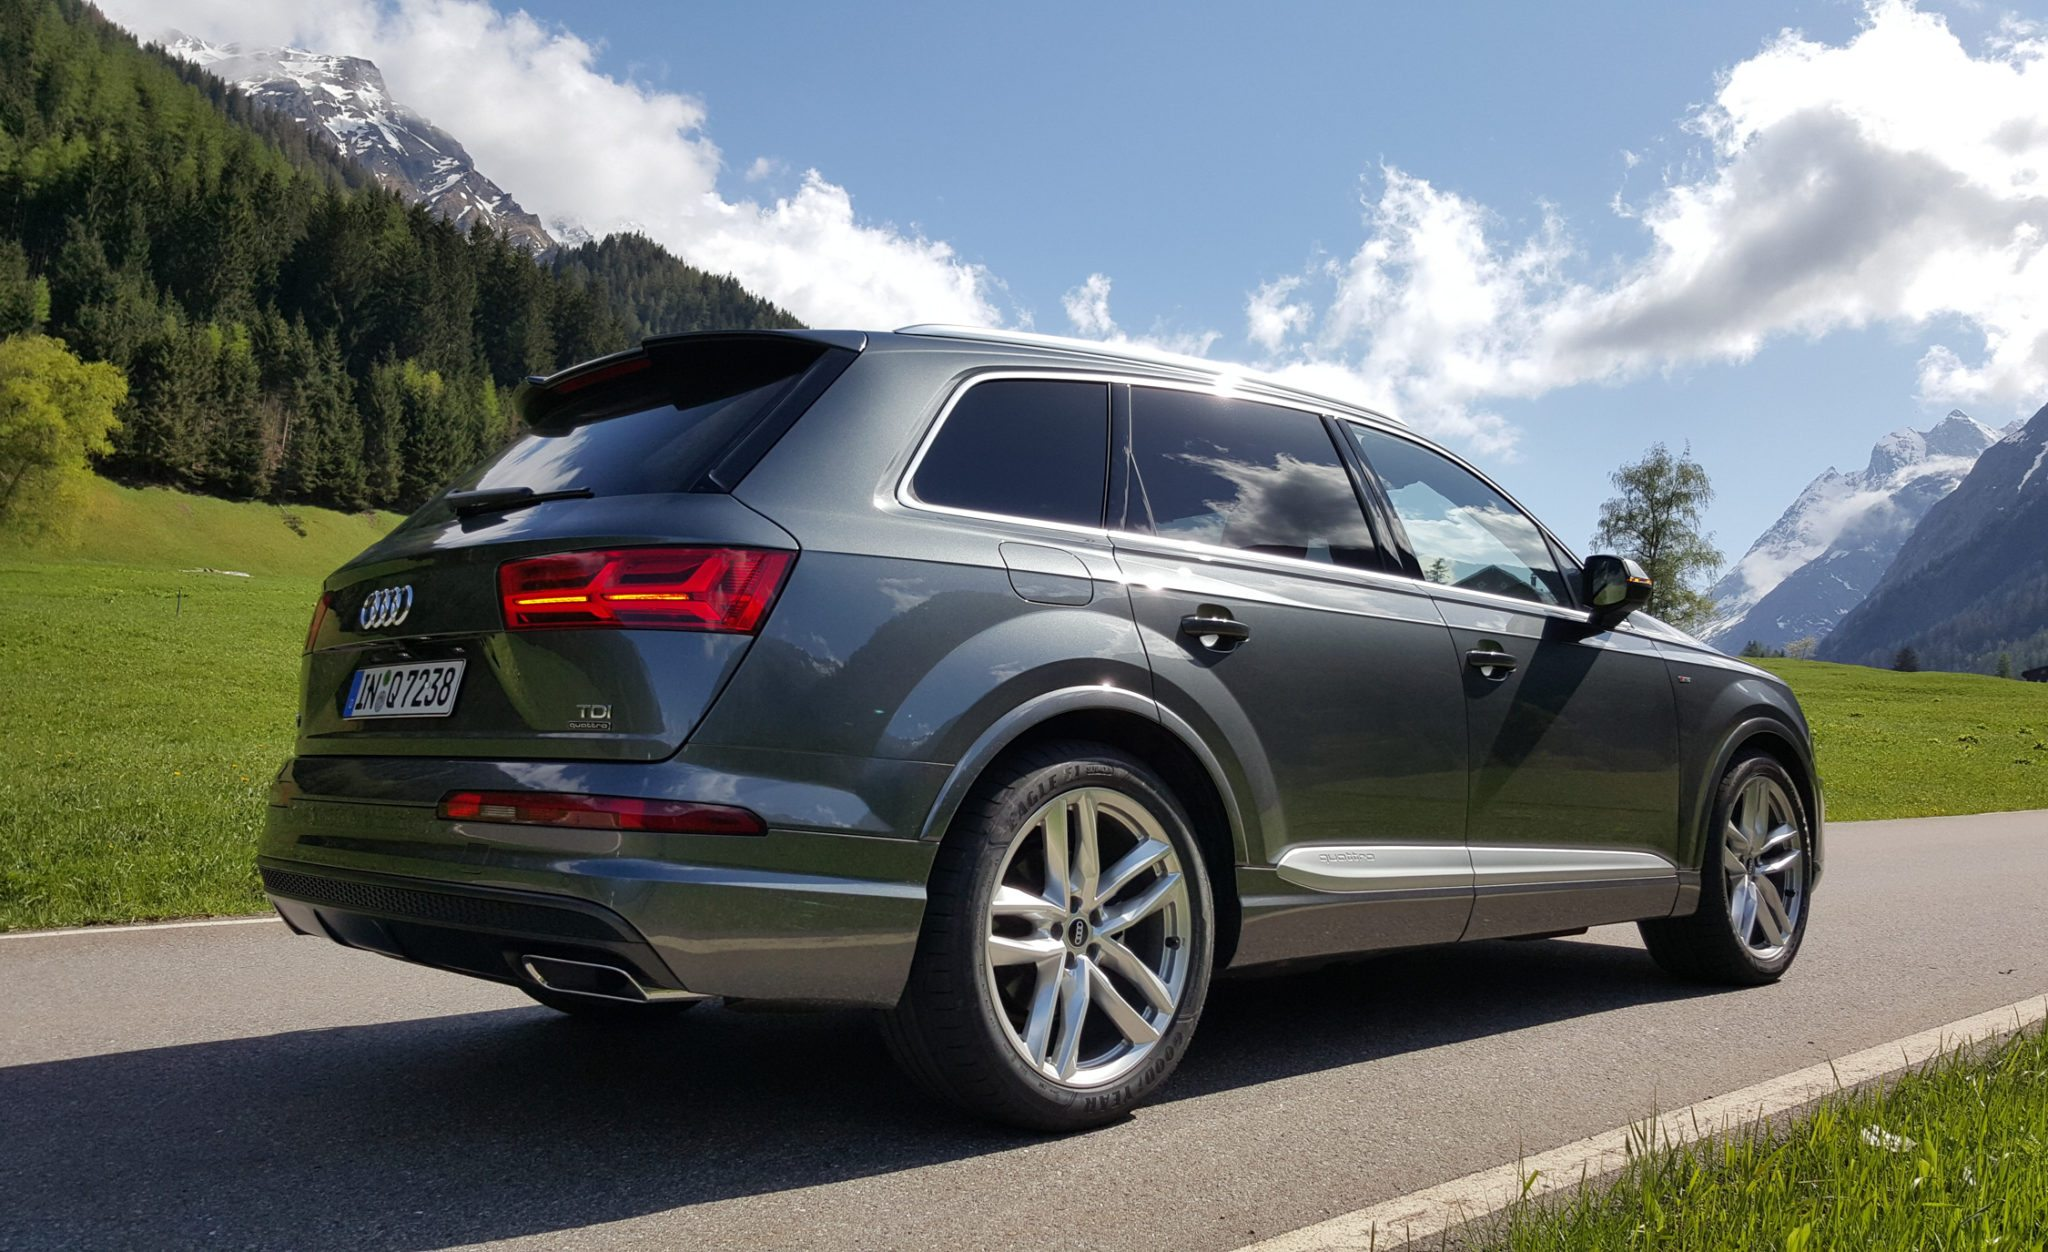 2017 Audi Q7 Pricing and Features Detailed 2